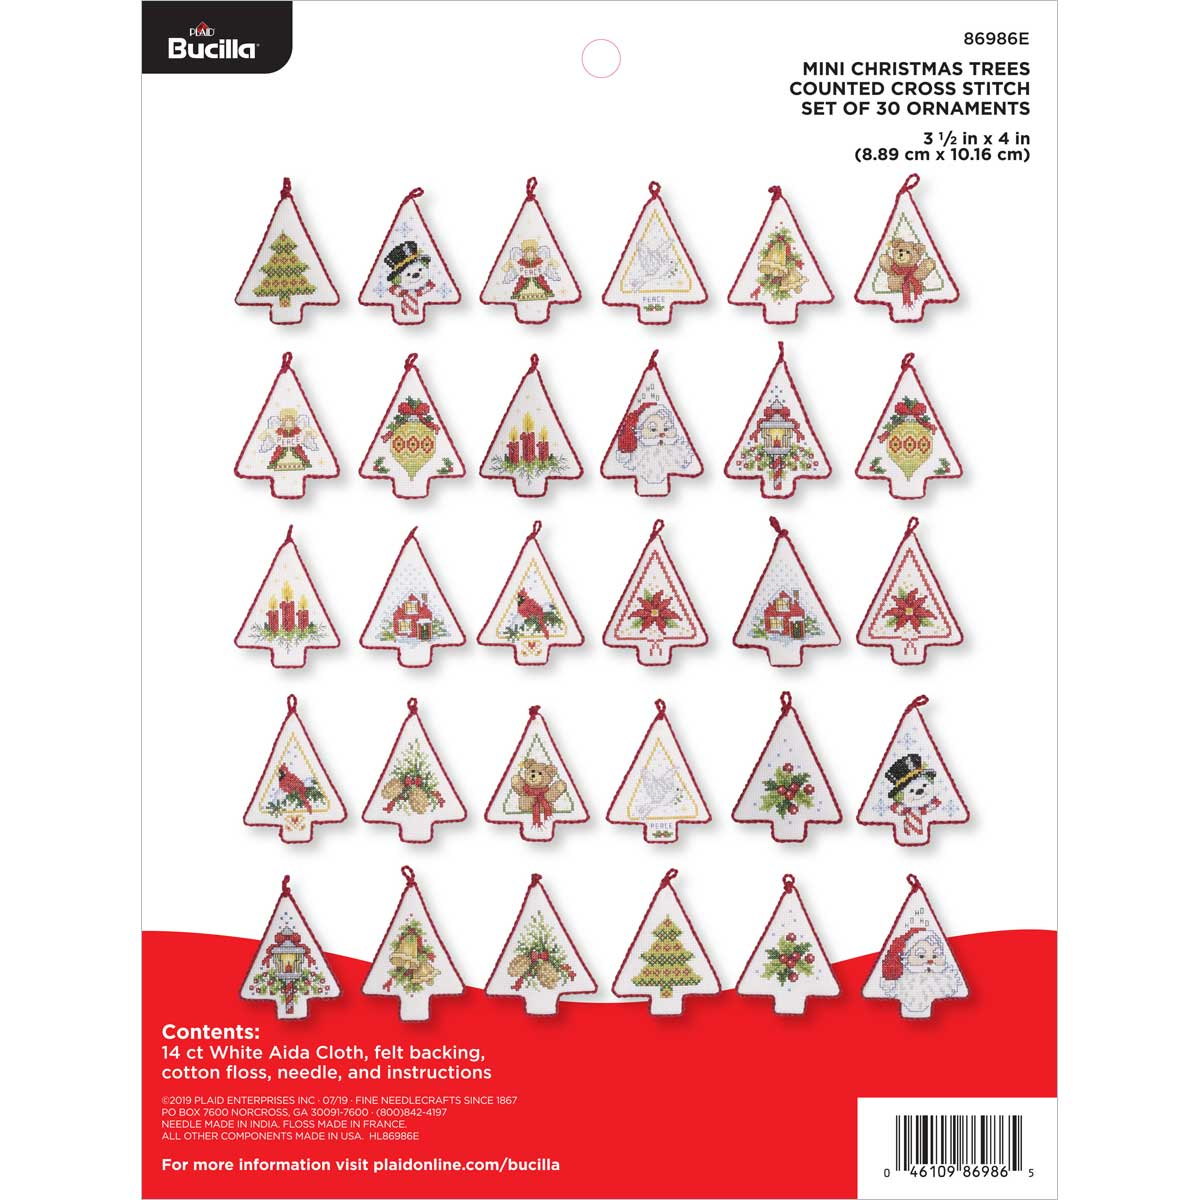 Bucilla ® Seasonal - Counted Cross Stitch - Ornament Kits - Mini Christmas Trees - 86986E